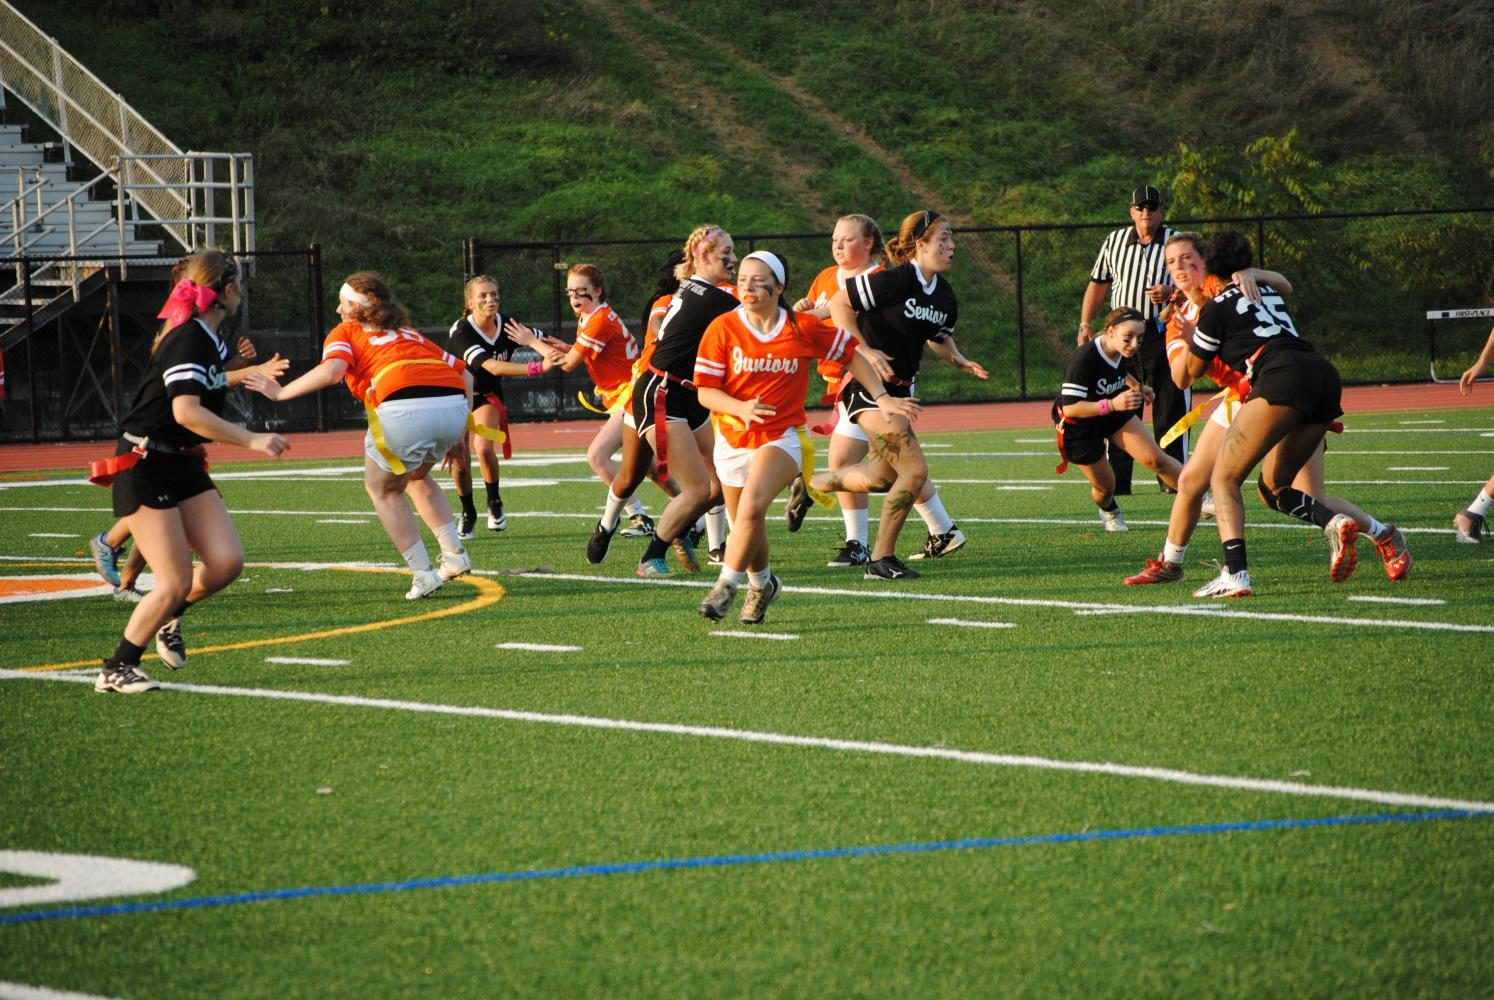 Senior and Junior powderpuff players duke it out on the field on Sunday, Sept. 17. Photo by: Amber Schnupp